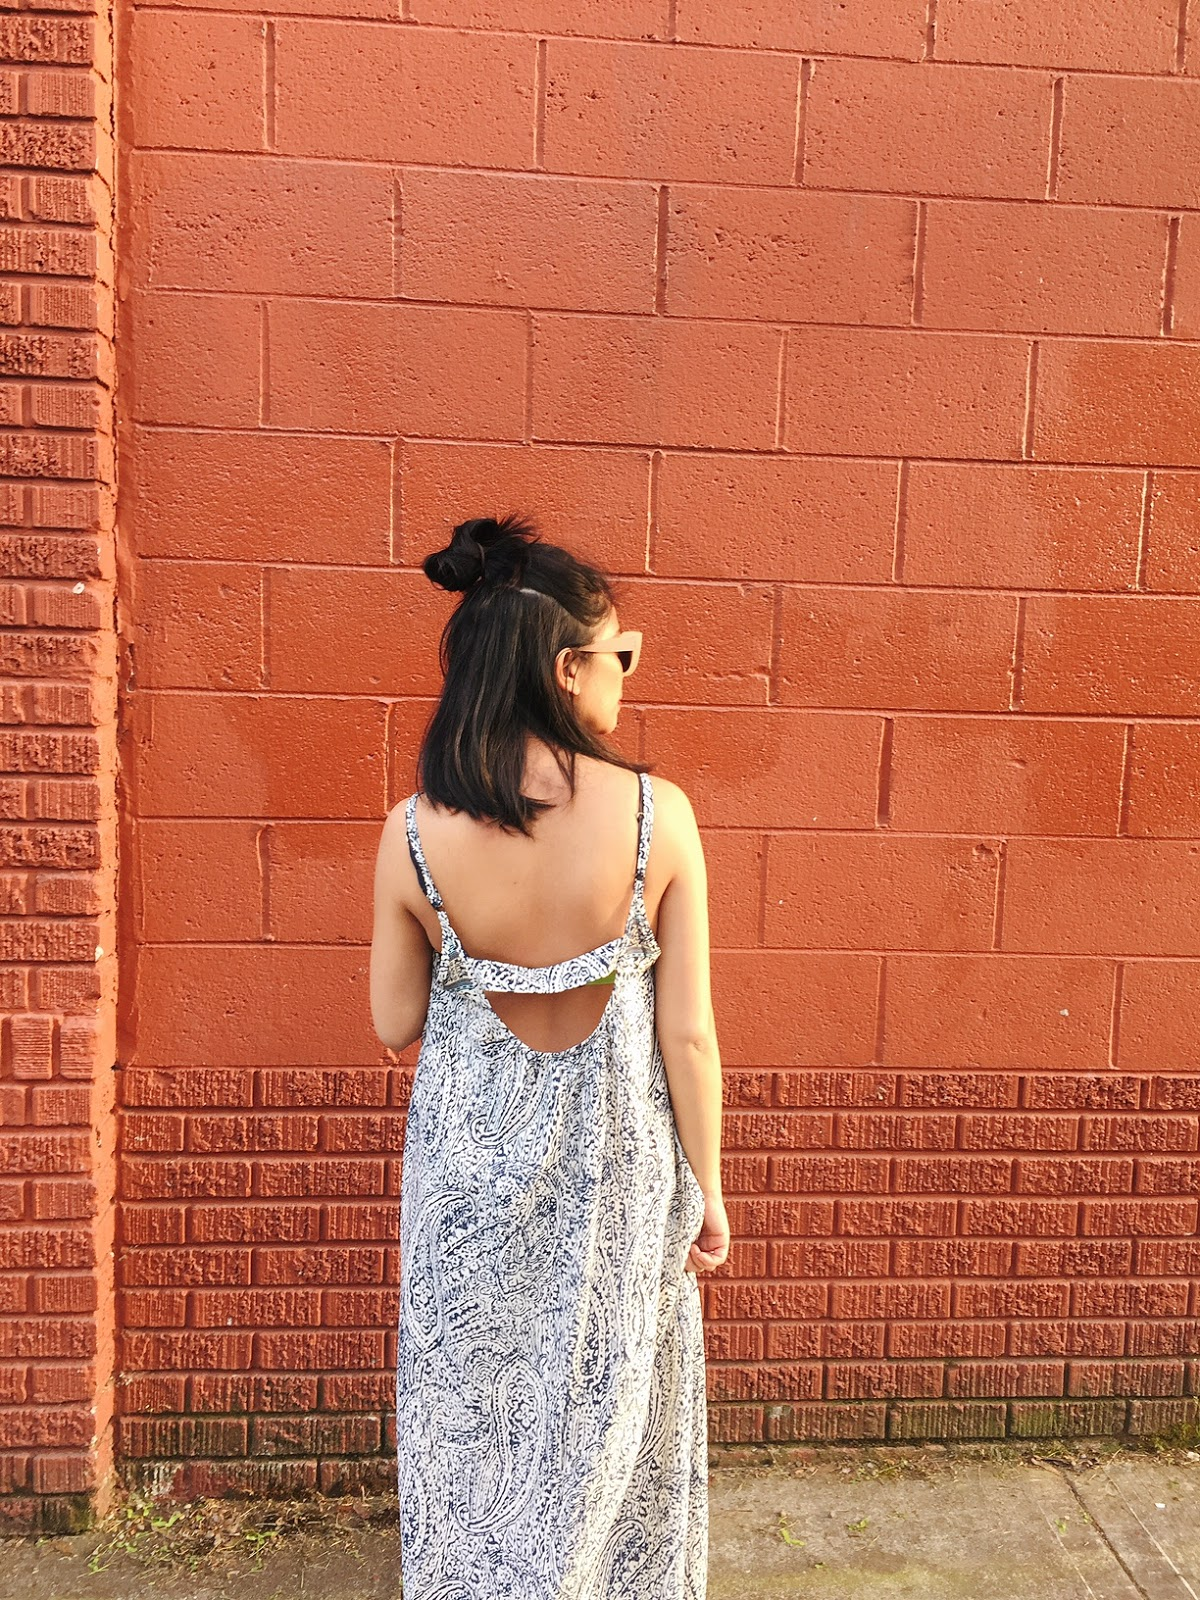 bodycon dresses, cocktail dresses, dresses, fblogger, maxi dresses, midi dresses, paisley dress, pdx fashion, portland fashion blogger, prom dresses, spring 2016,